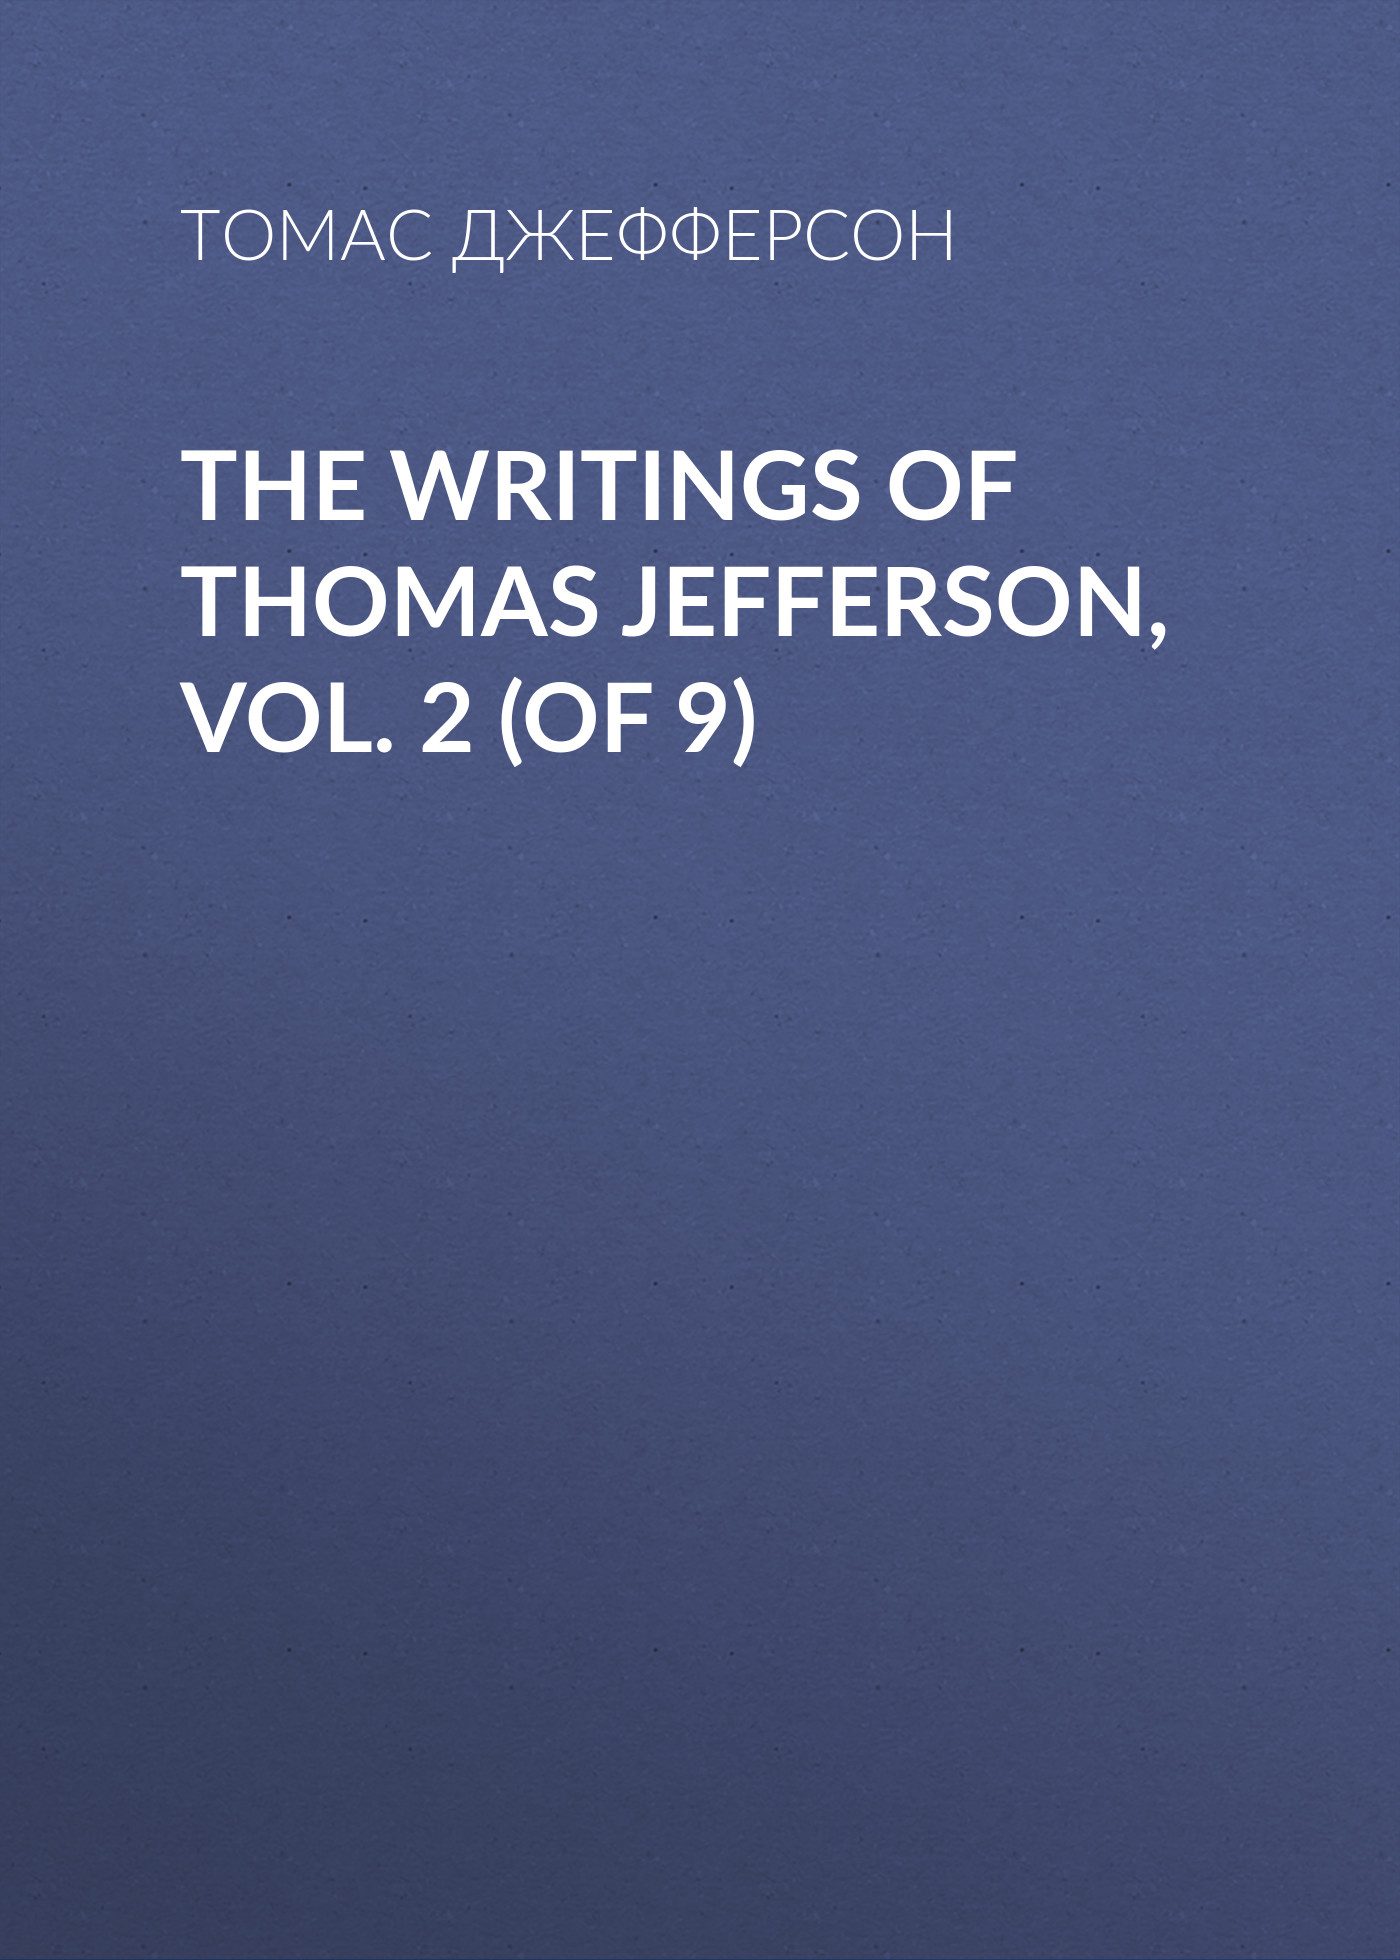 цена Томас Джефферсон The Writings of Thomas Jefferson, Vol. 2 (of 9) онлайн в 2017 году